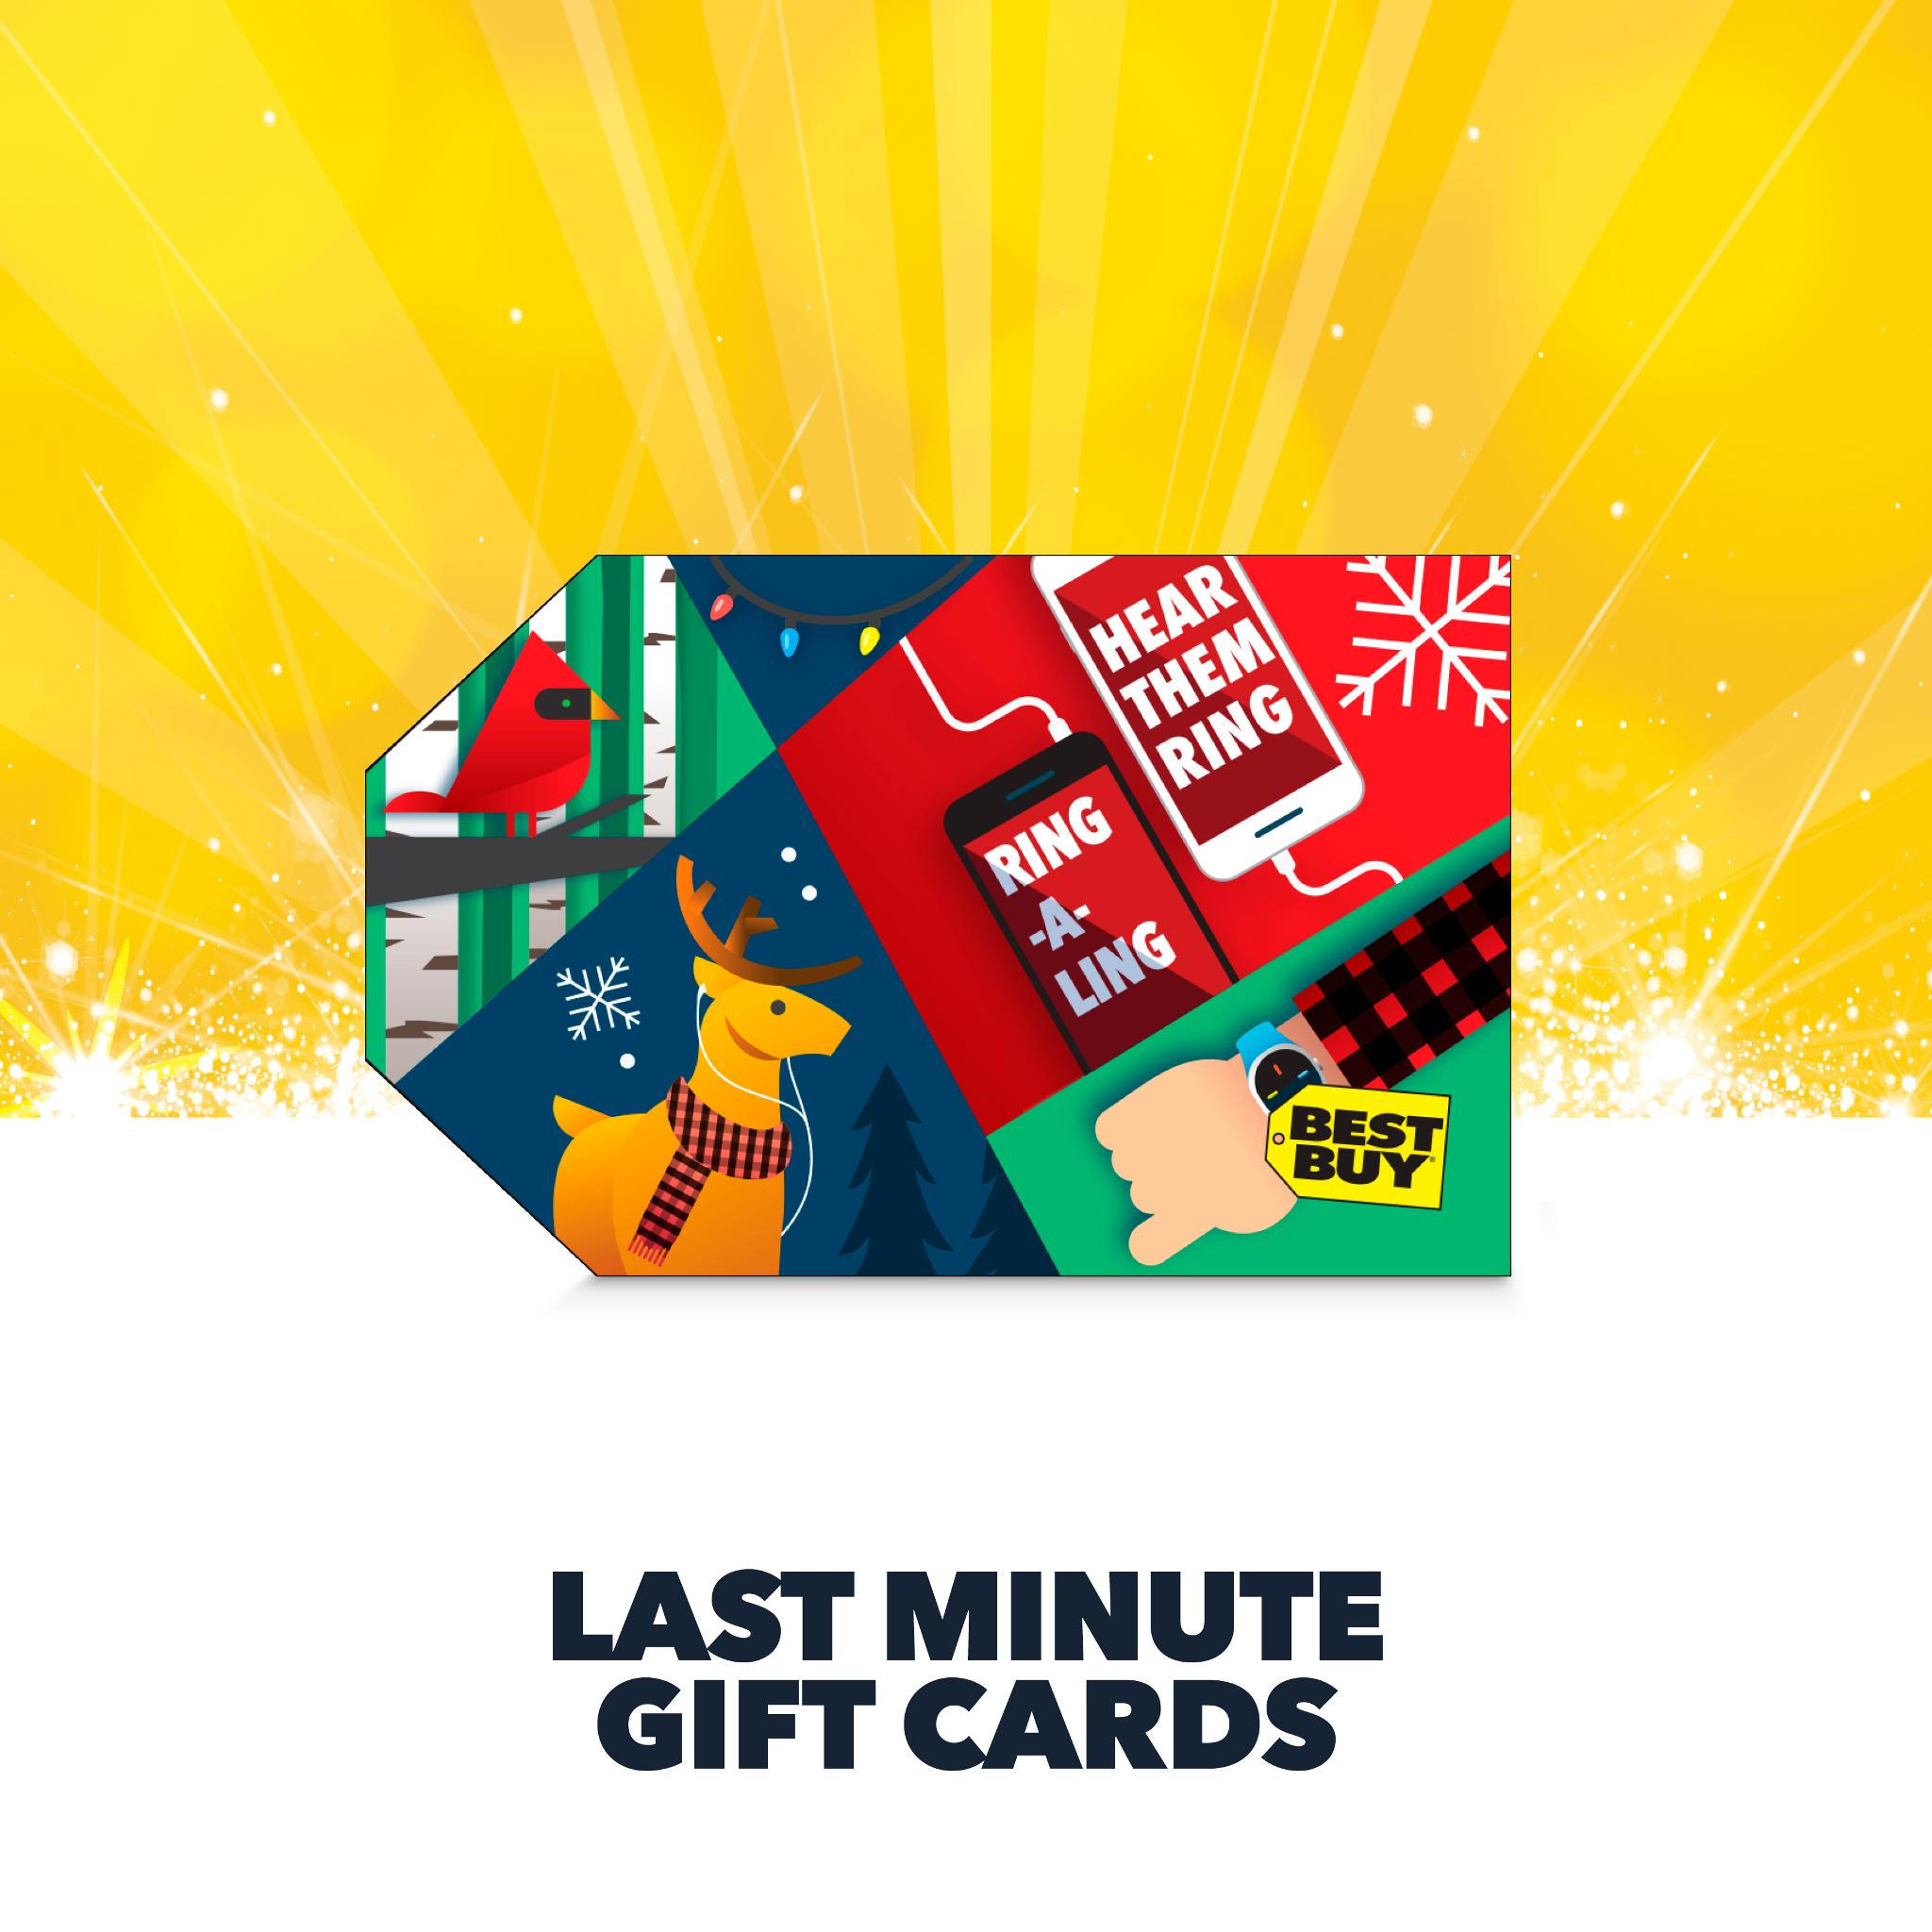 Still don't know what to get them? We've got the answer: GIFT CARDS. https://t.co/1t0GZGhACy https://t.co/eqttGBp7Y2